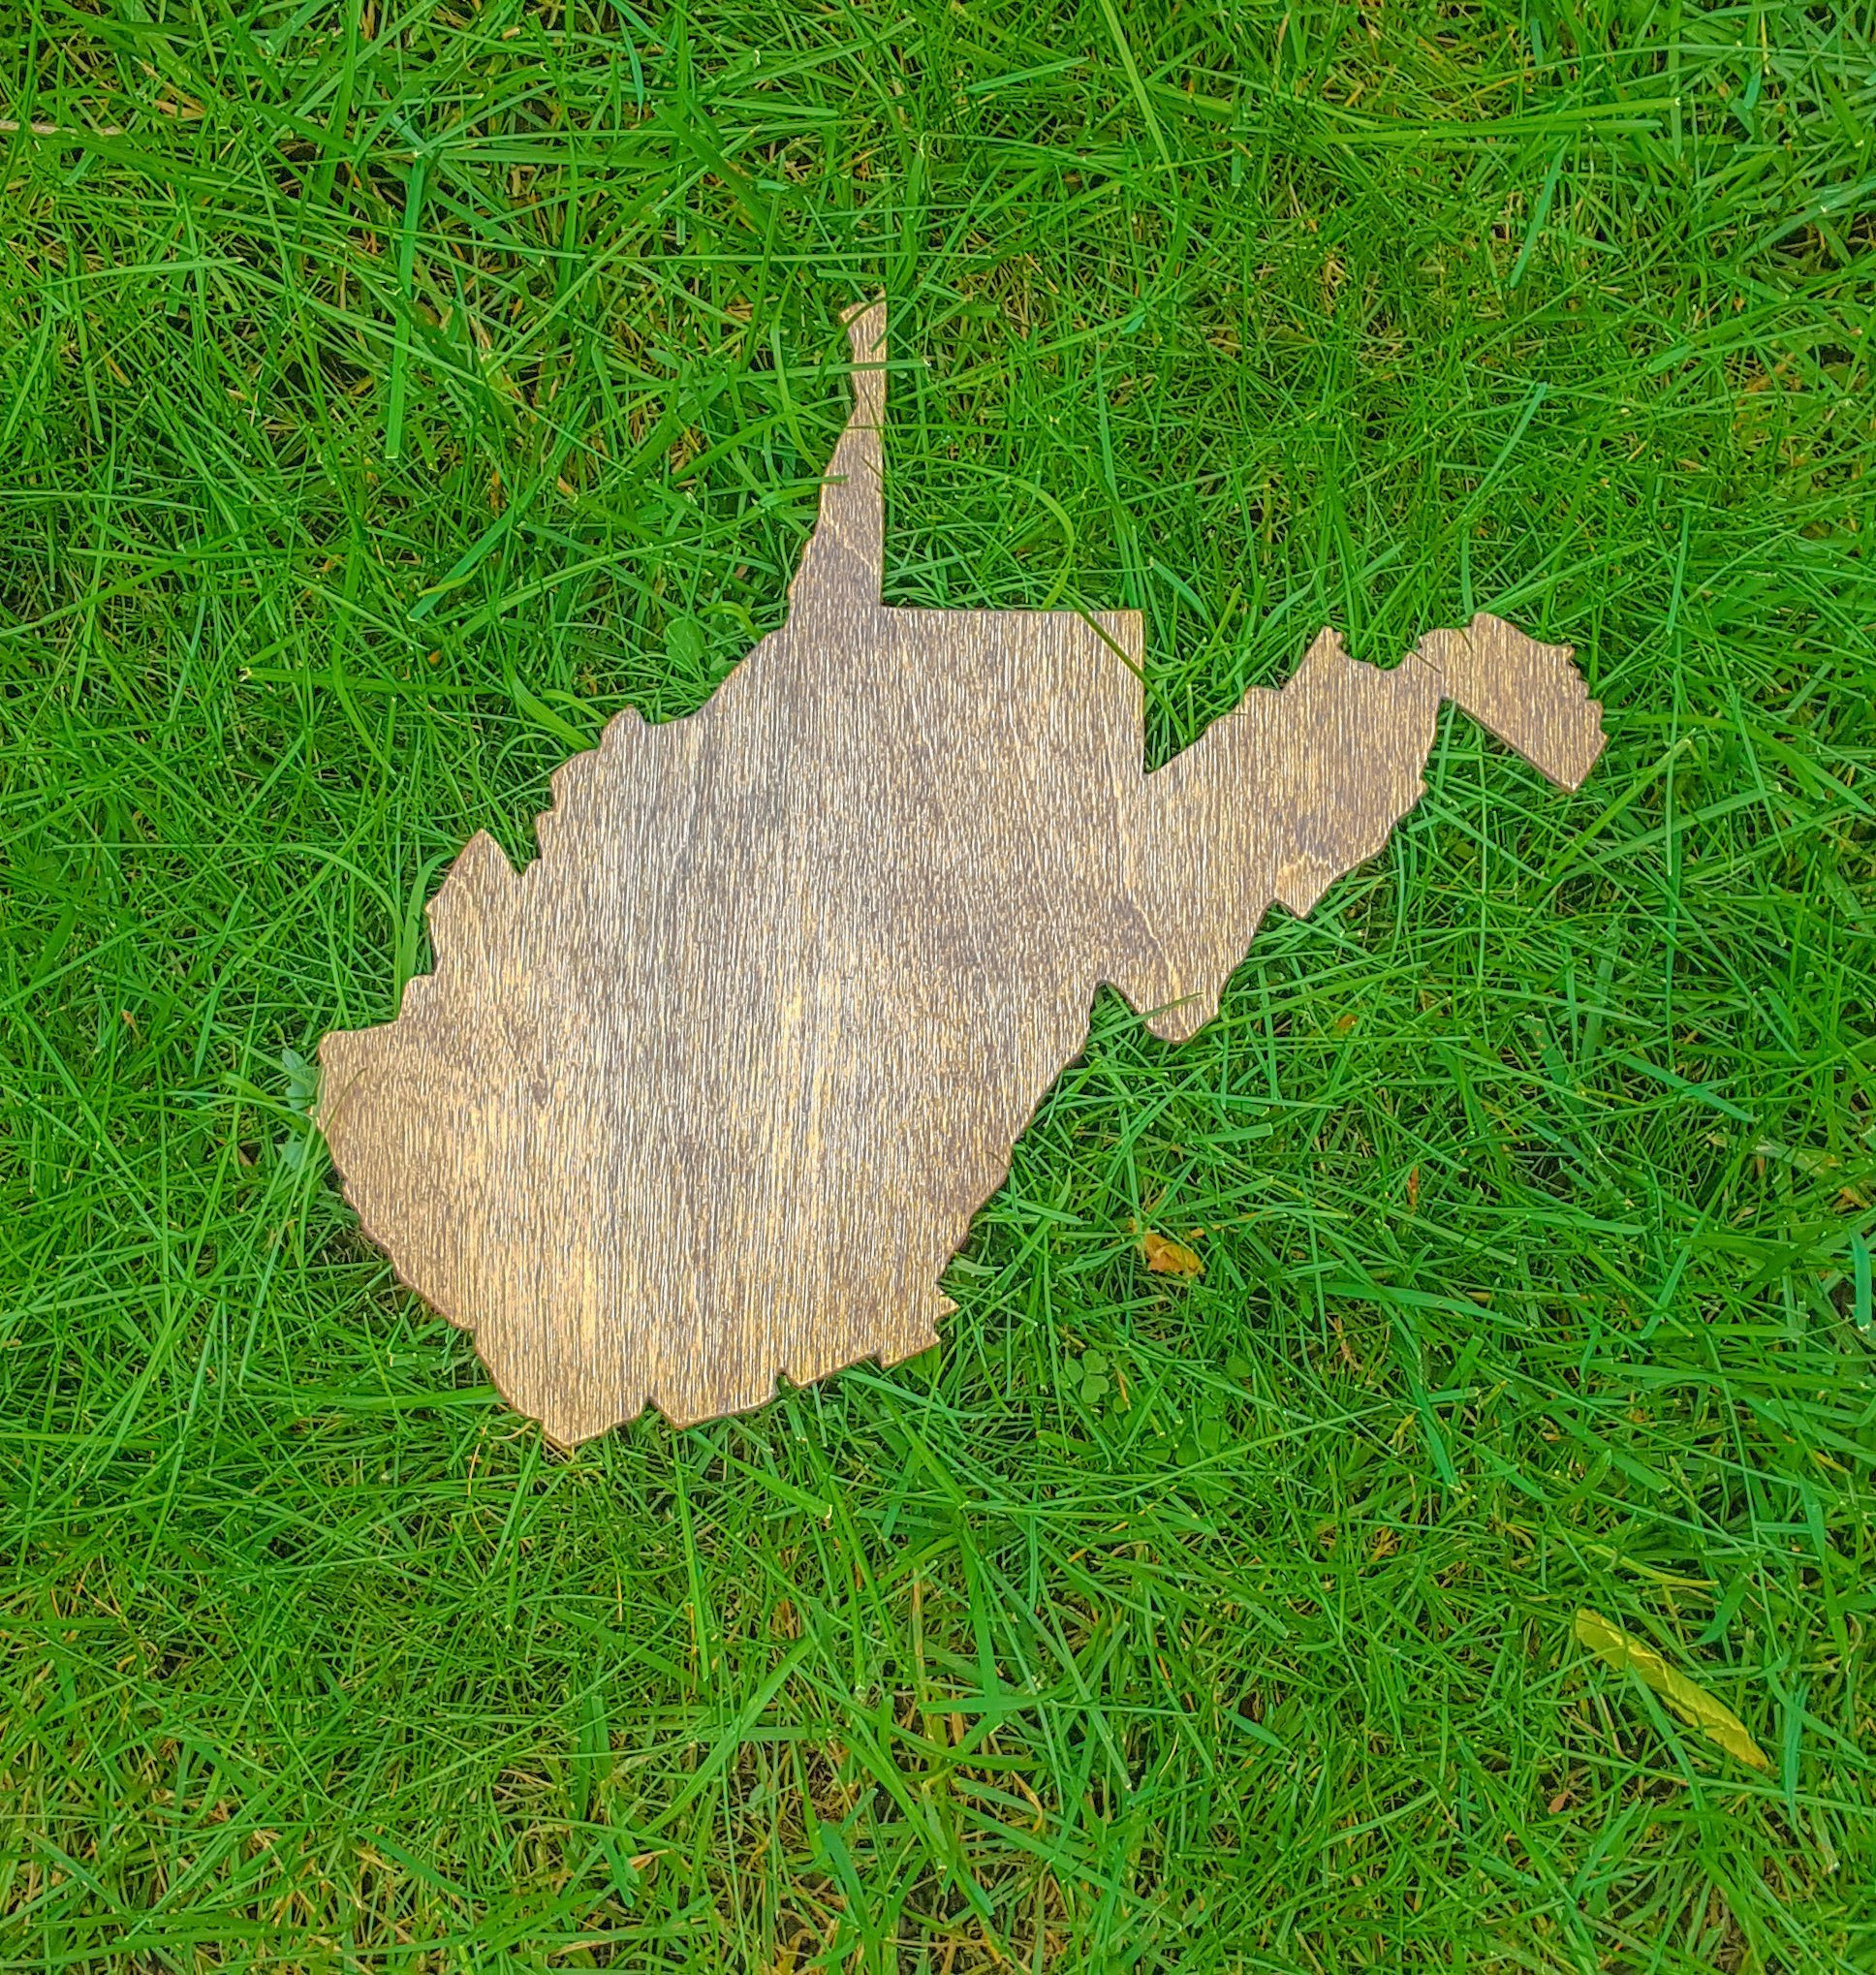 Rustic West Virginia Gallery Wall Art Wooden Cutout Office College Dorm Home Bedroom Decor